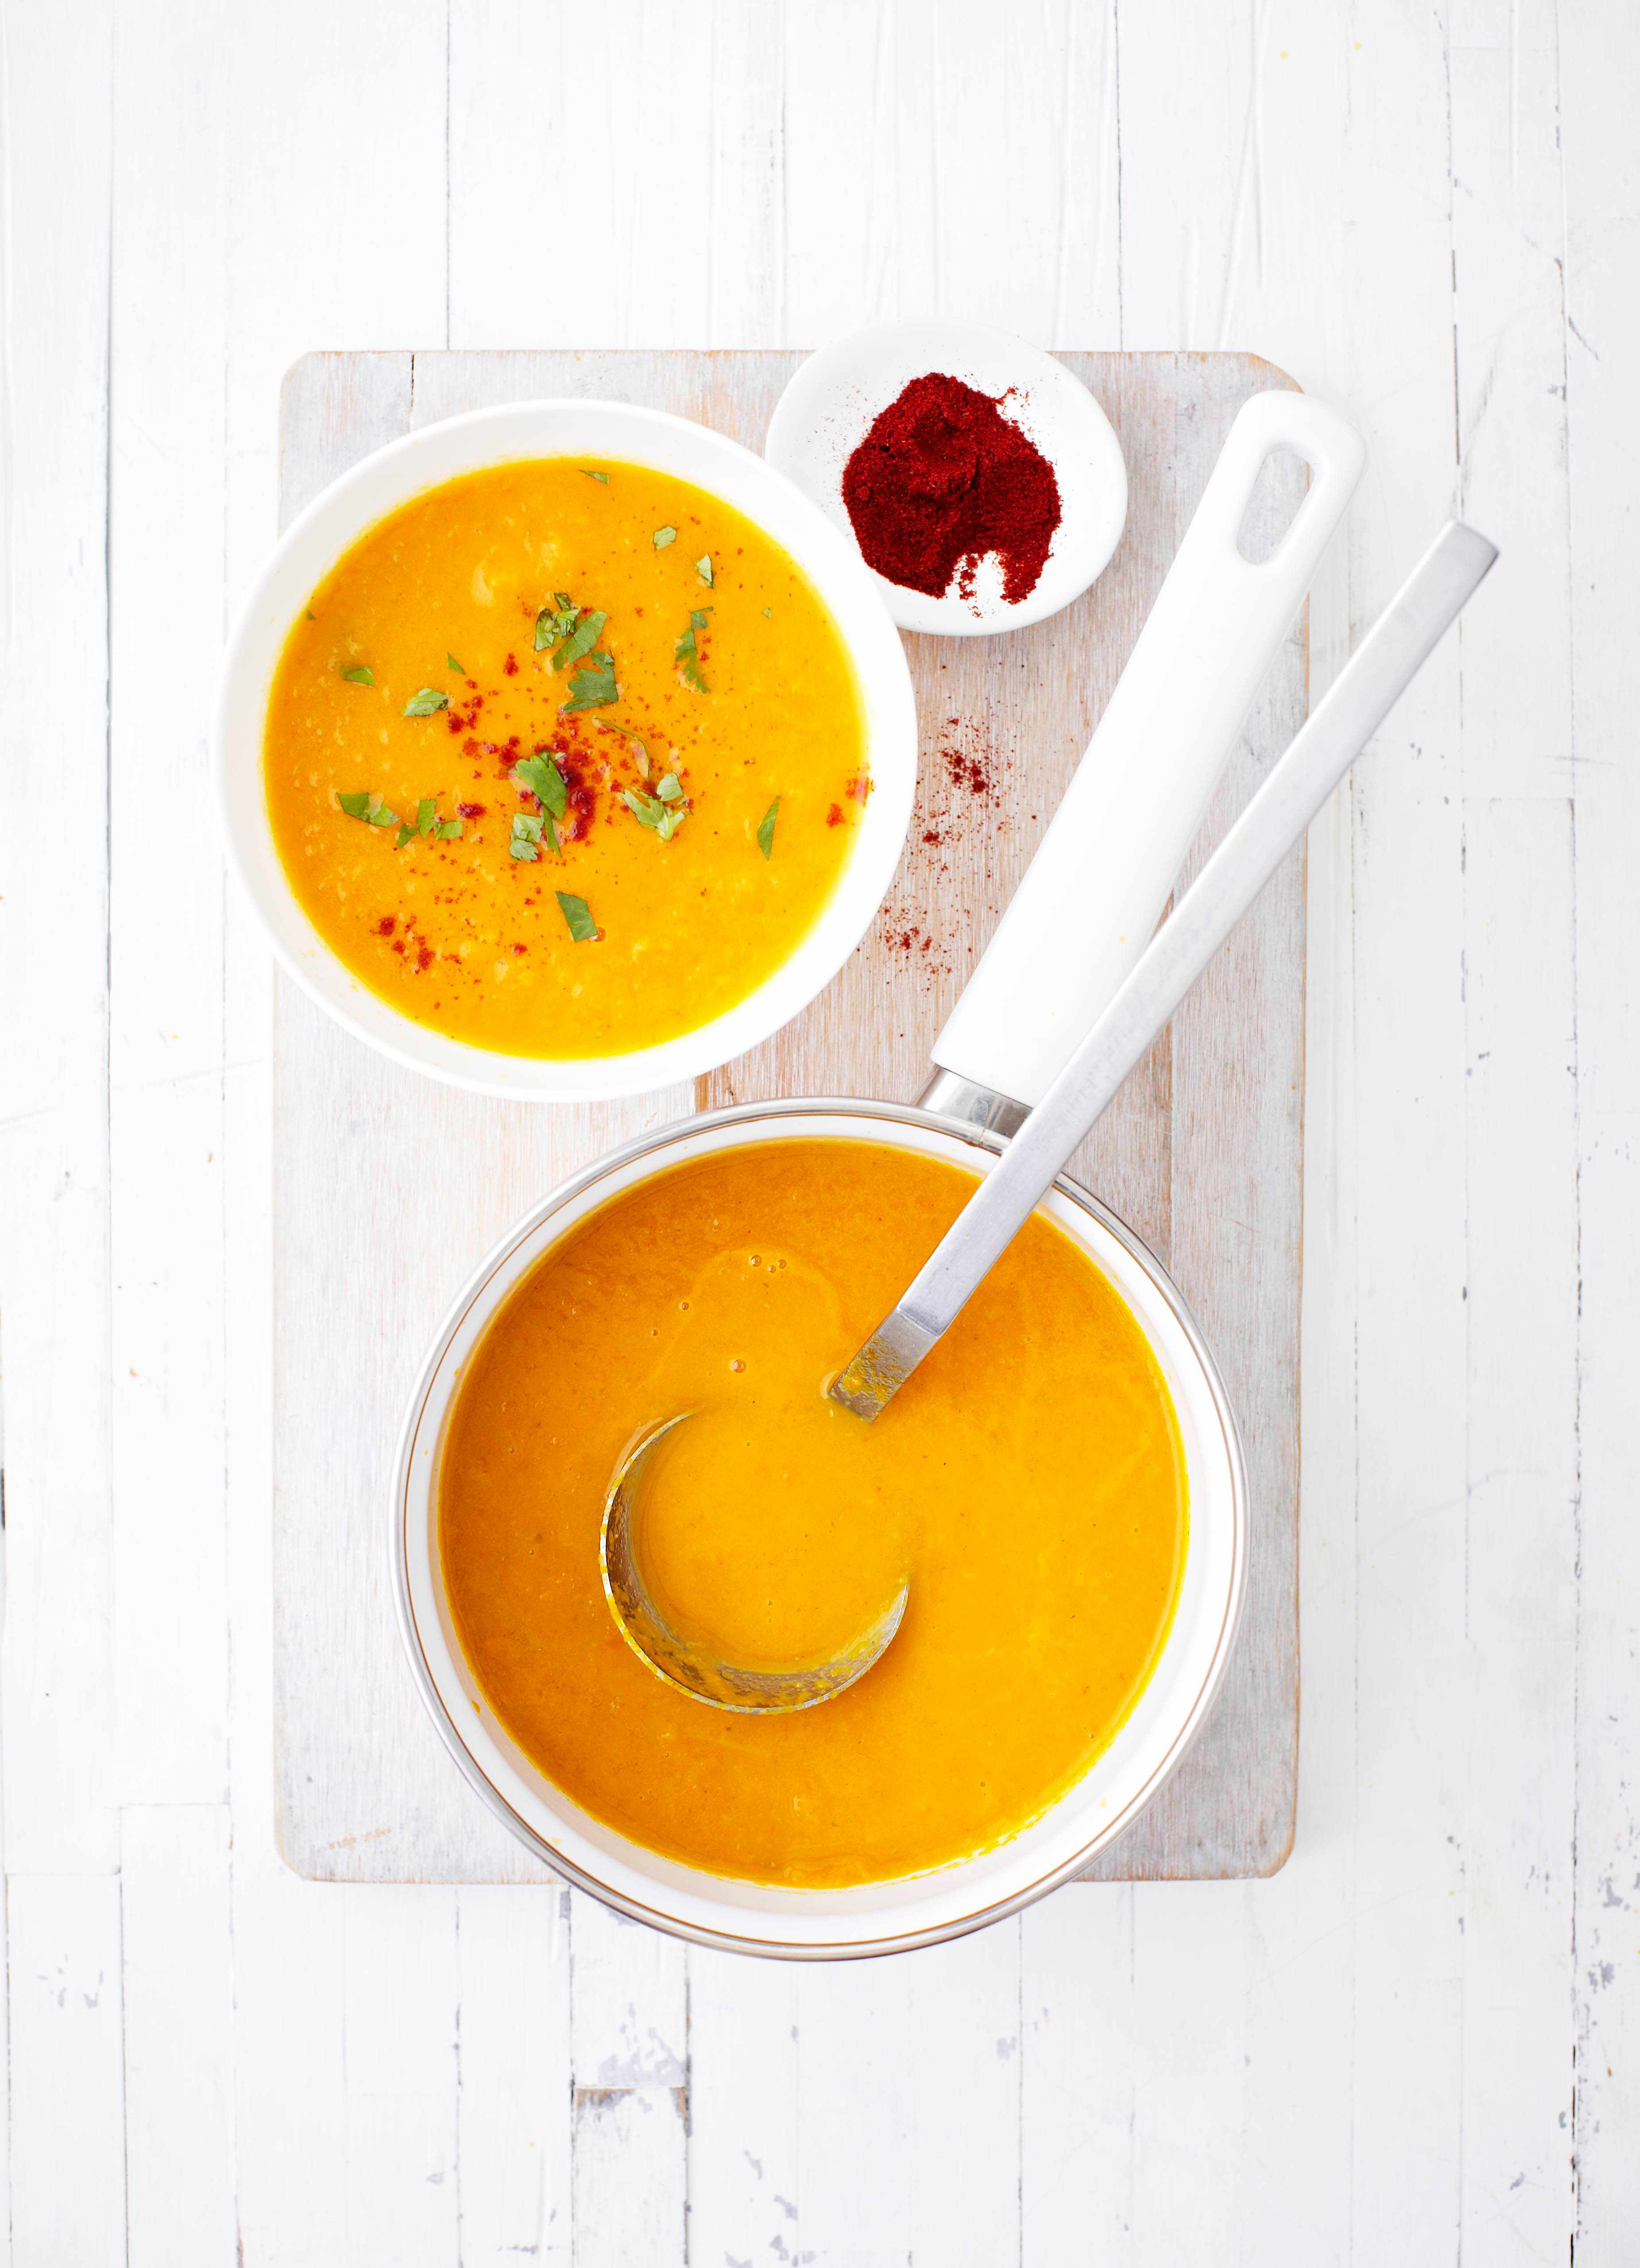 Carrot and smoked paprika soup